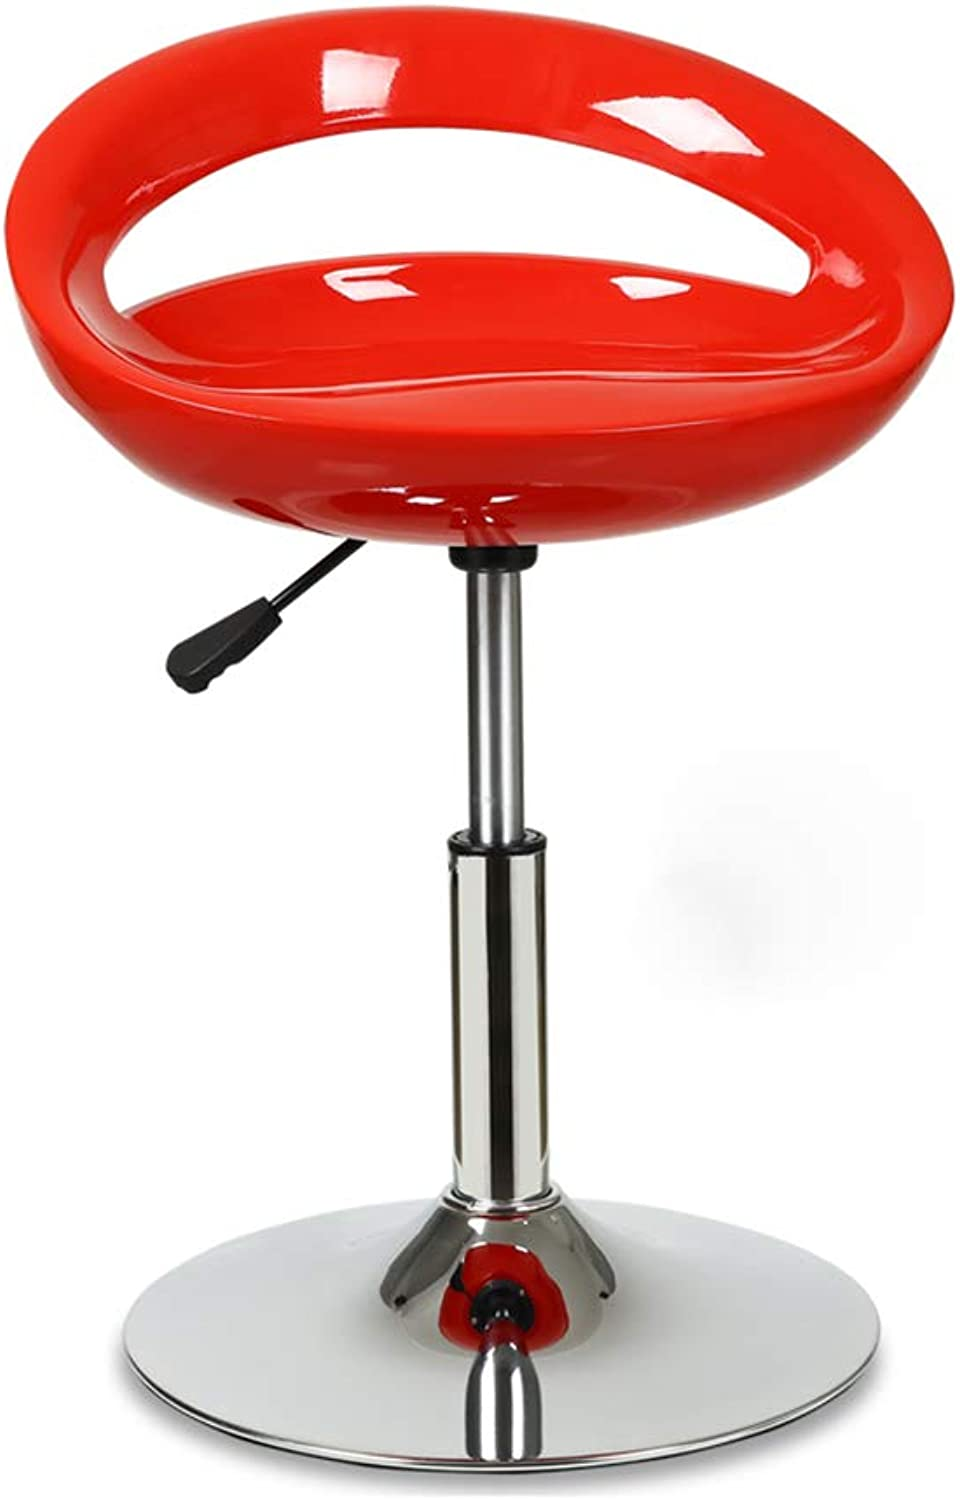 MEIDUO Bar stools Barstools, Counter Height Bar Stools Swivel Bar Stool Adjustable Bar Chair Gloss Finish Crescent Shape ABS in 9 colors (color   RED)